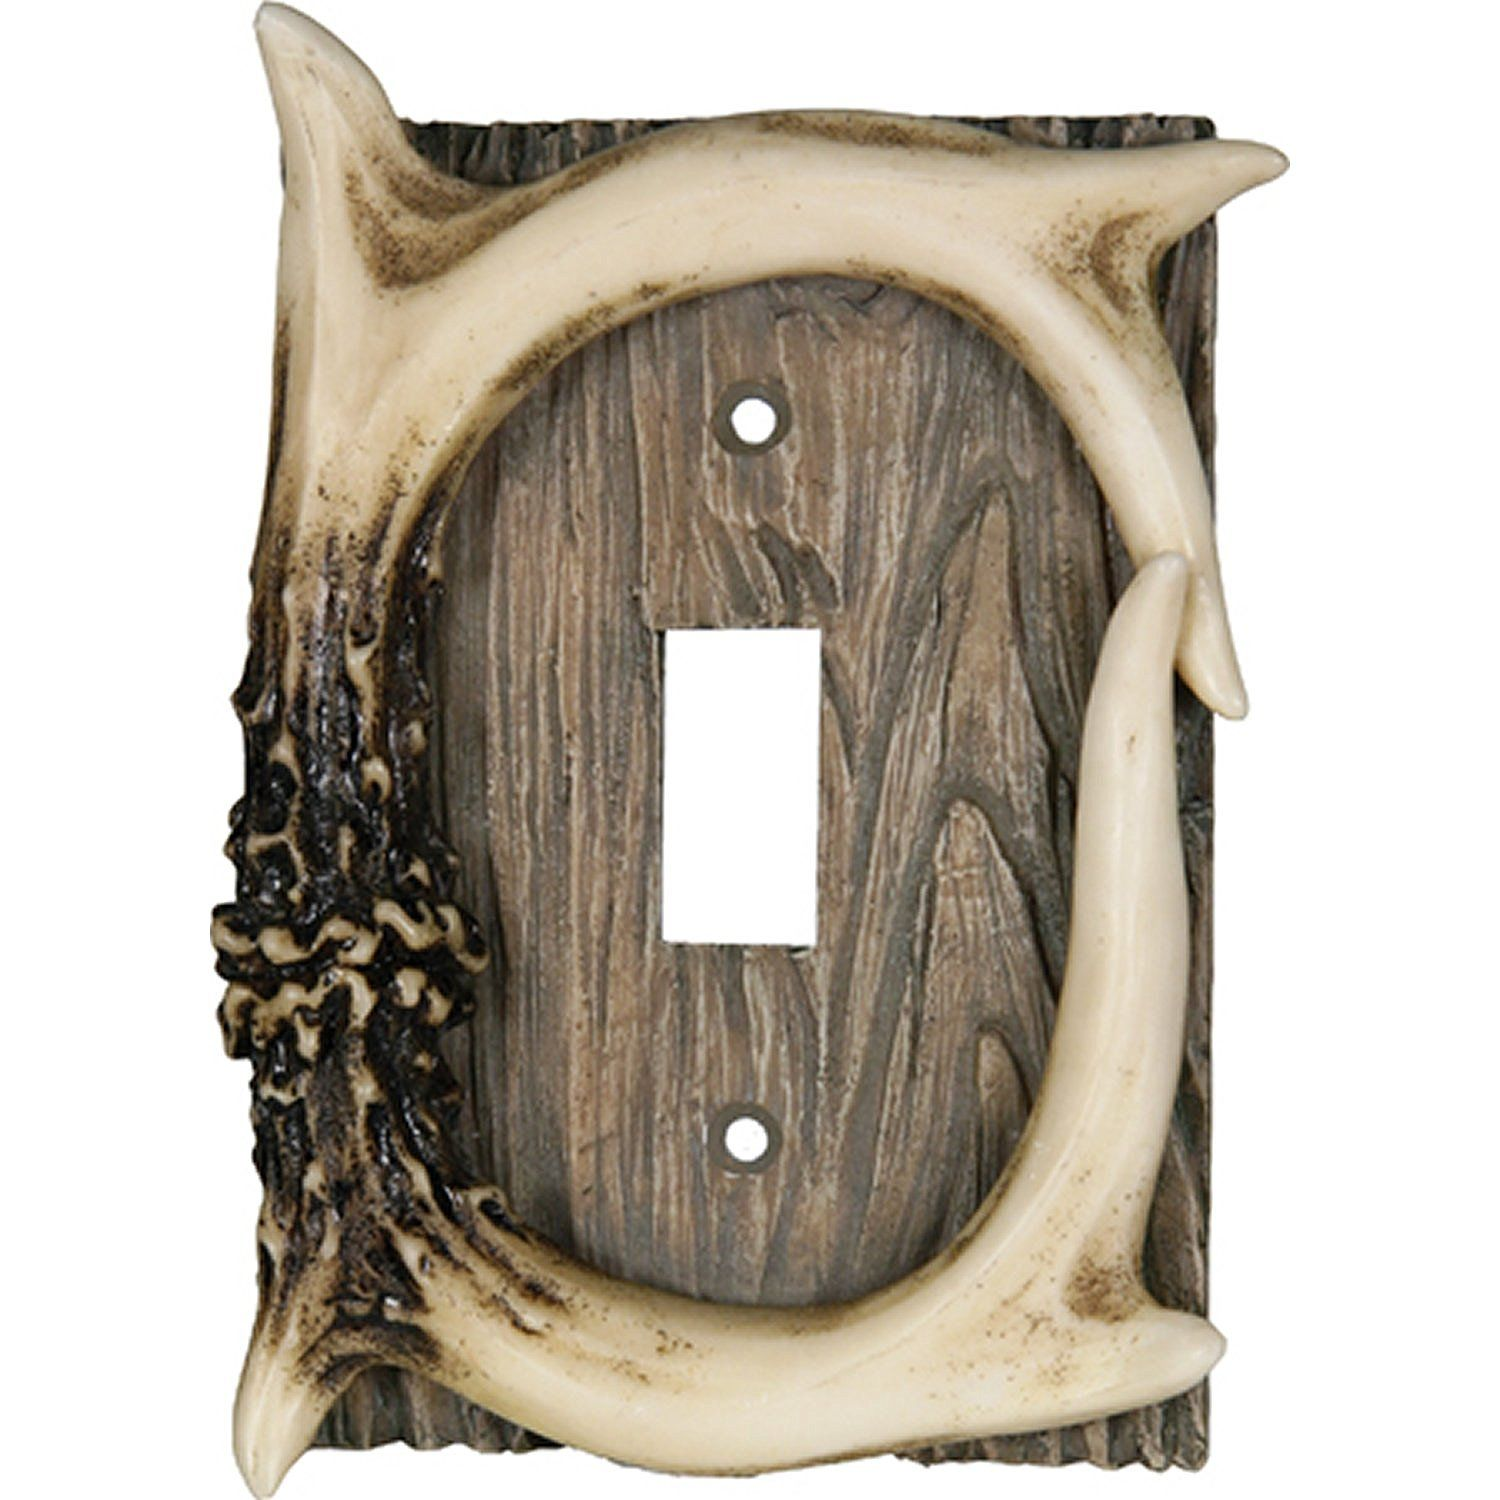 Amazon.com: Rivers Edge Products Deer Antler Single Switch Electrical Cover Plate CVR: Sports & Outdoors